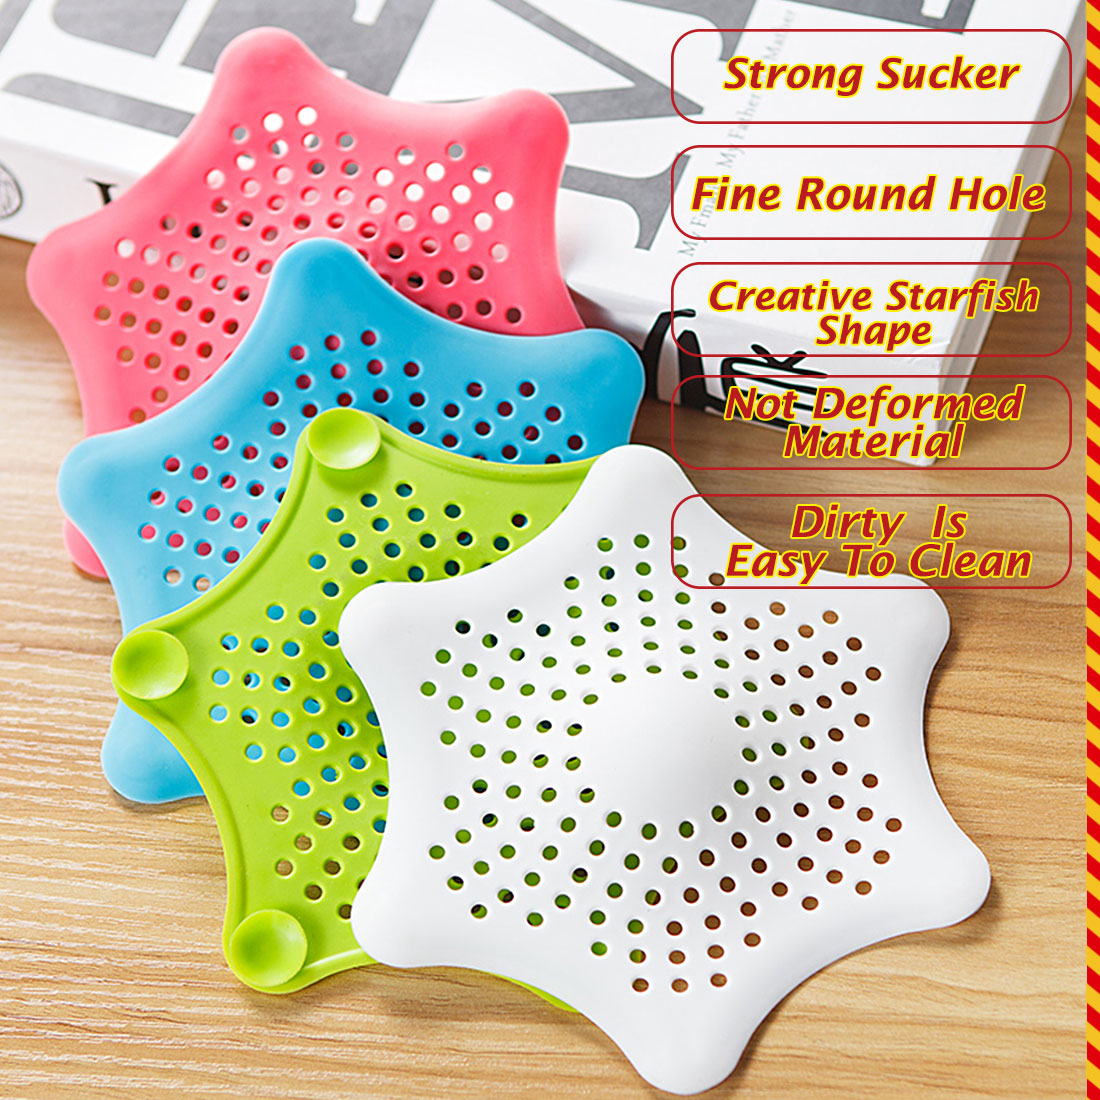 Hot Sink Filter Pentagram Kitchen Anti-Clogging Floor Drain Bathroom Filter Bathtub Drain Cover Drains Strainer